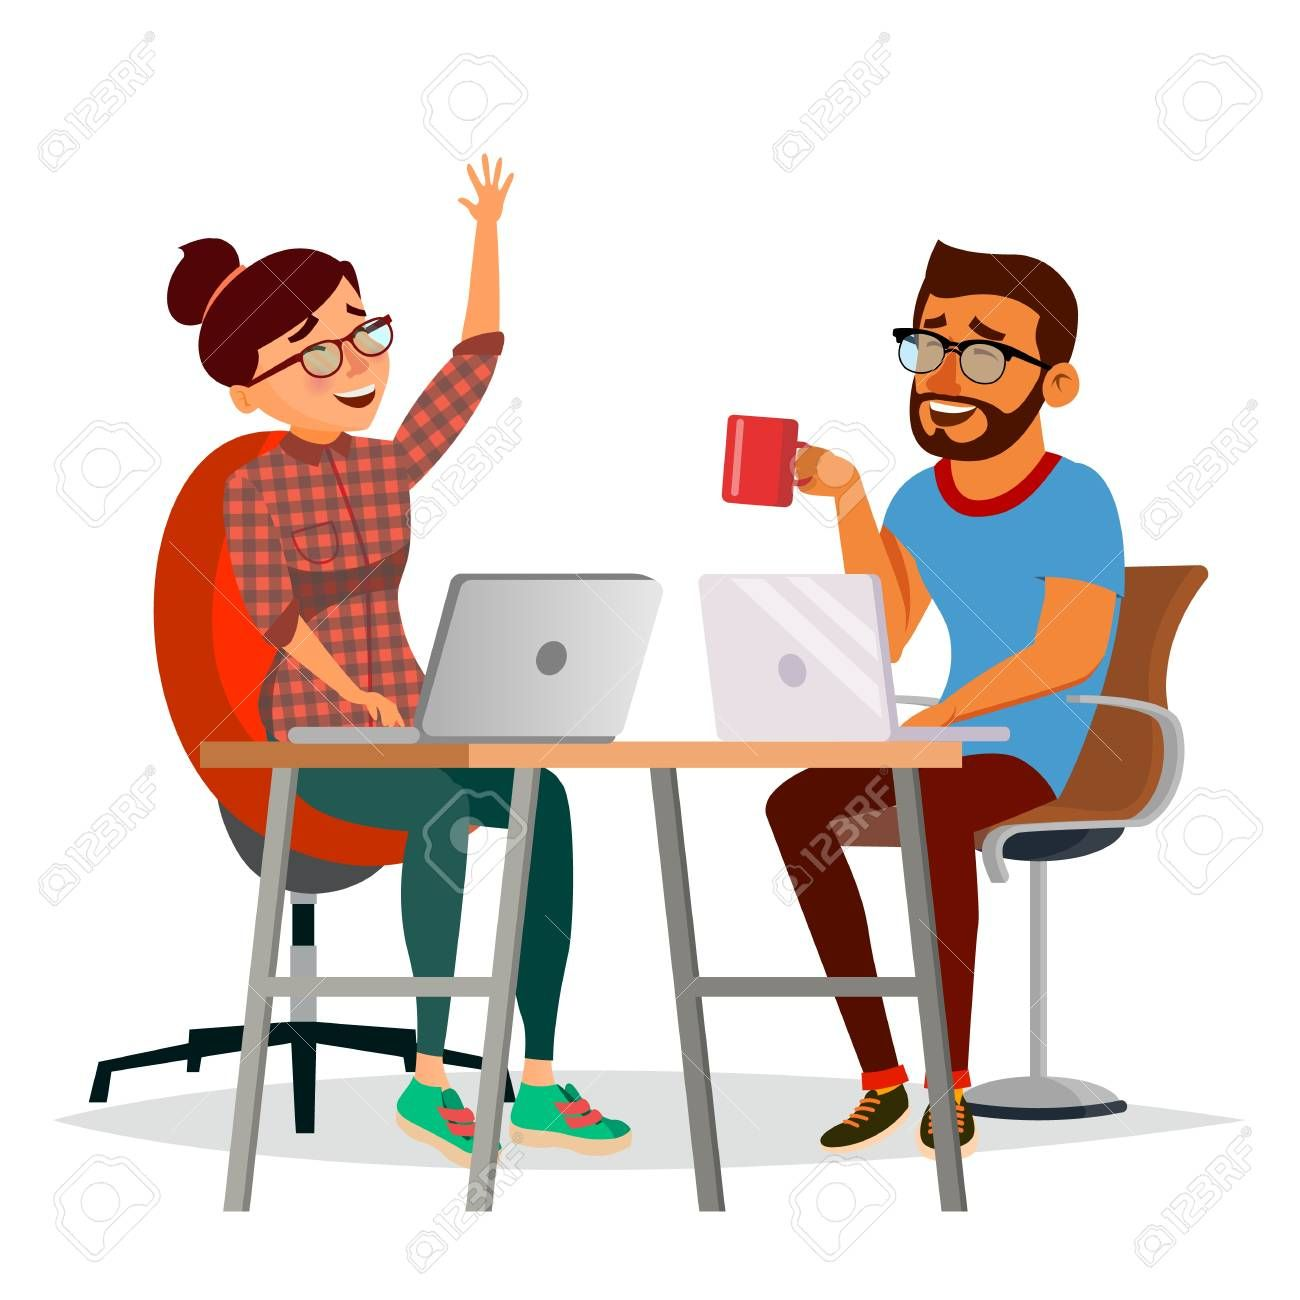 Business People Sitting At The Table Vector Laughing Friends Office Colleagues Man And Woman Talking To Each Character Illustration People Sitting Man Office